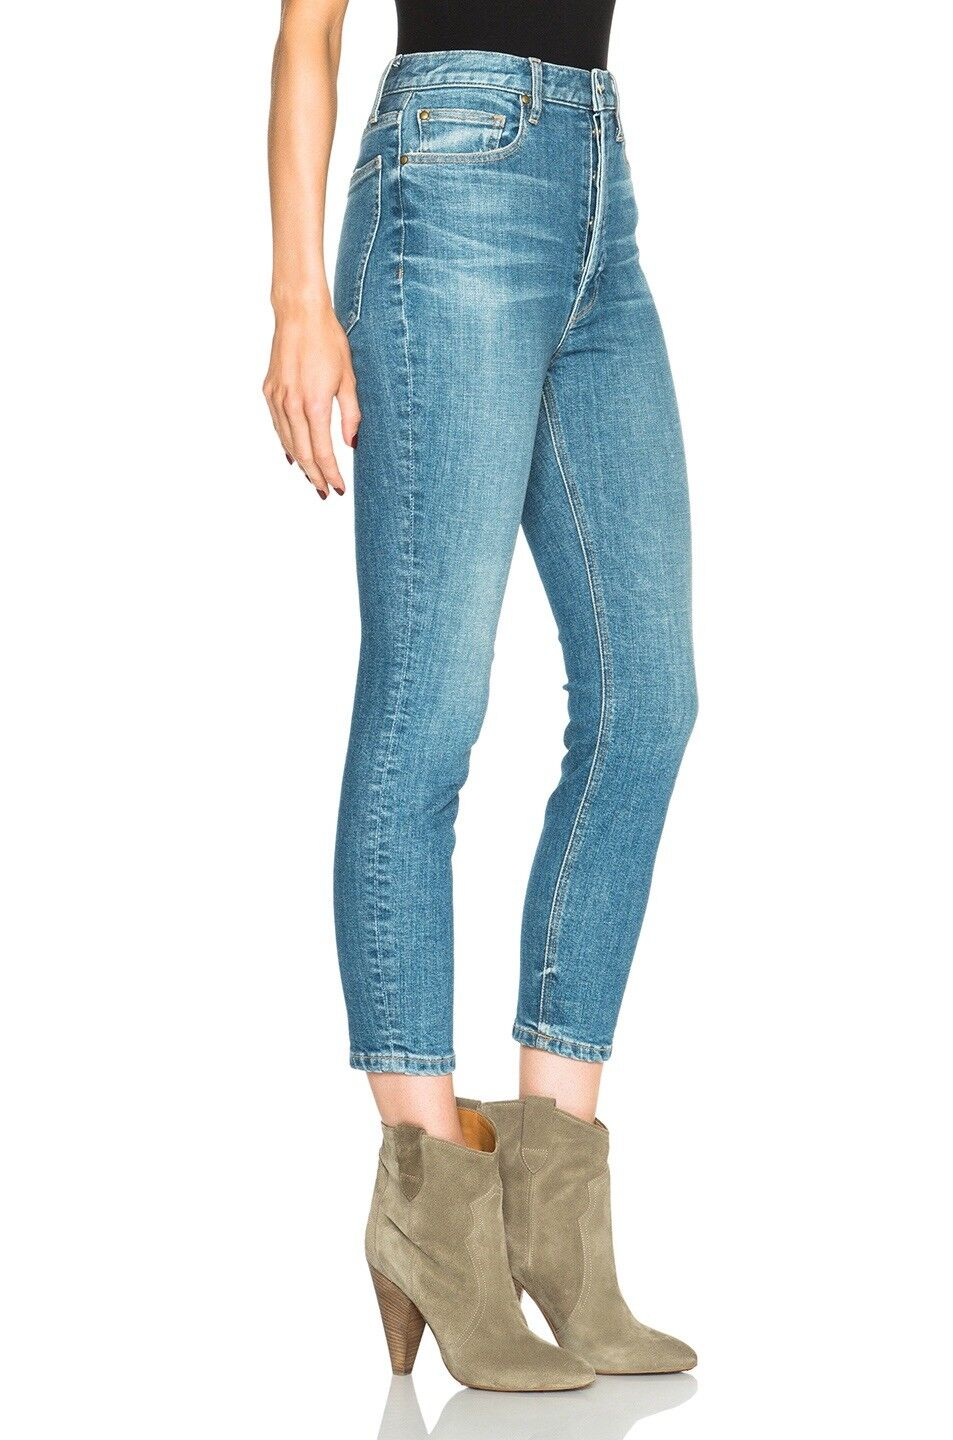 The Great Jeans 30 Straight Leg Denim Jeans The Peg Vintage Inspired